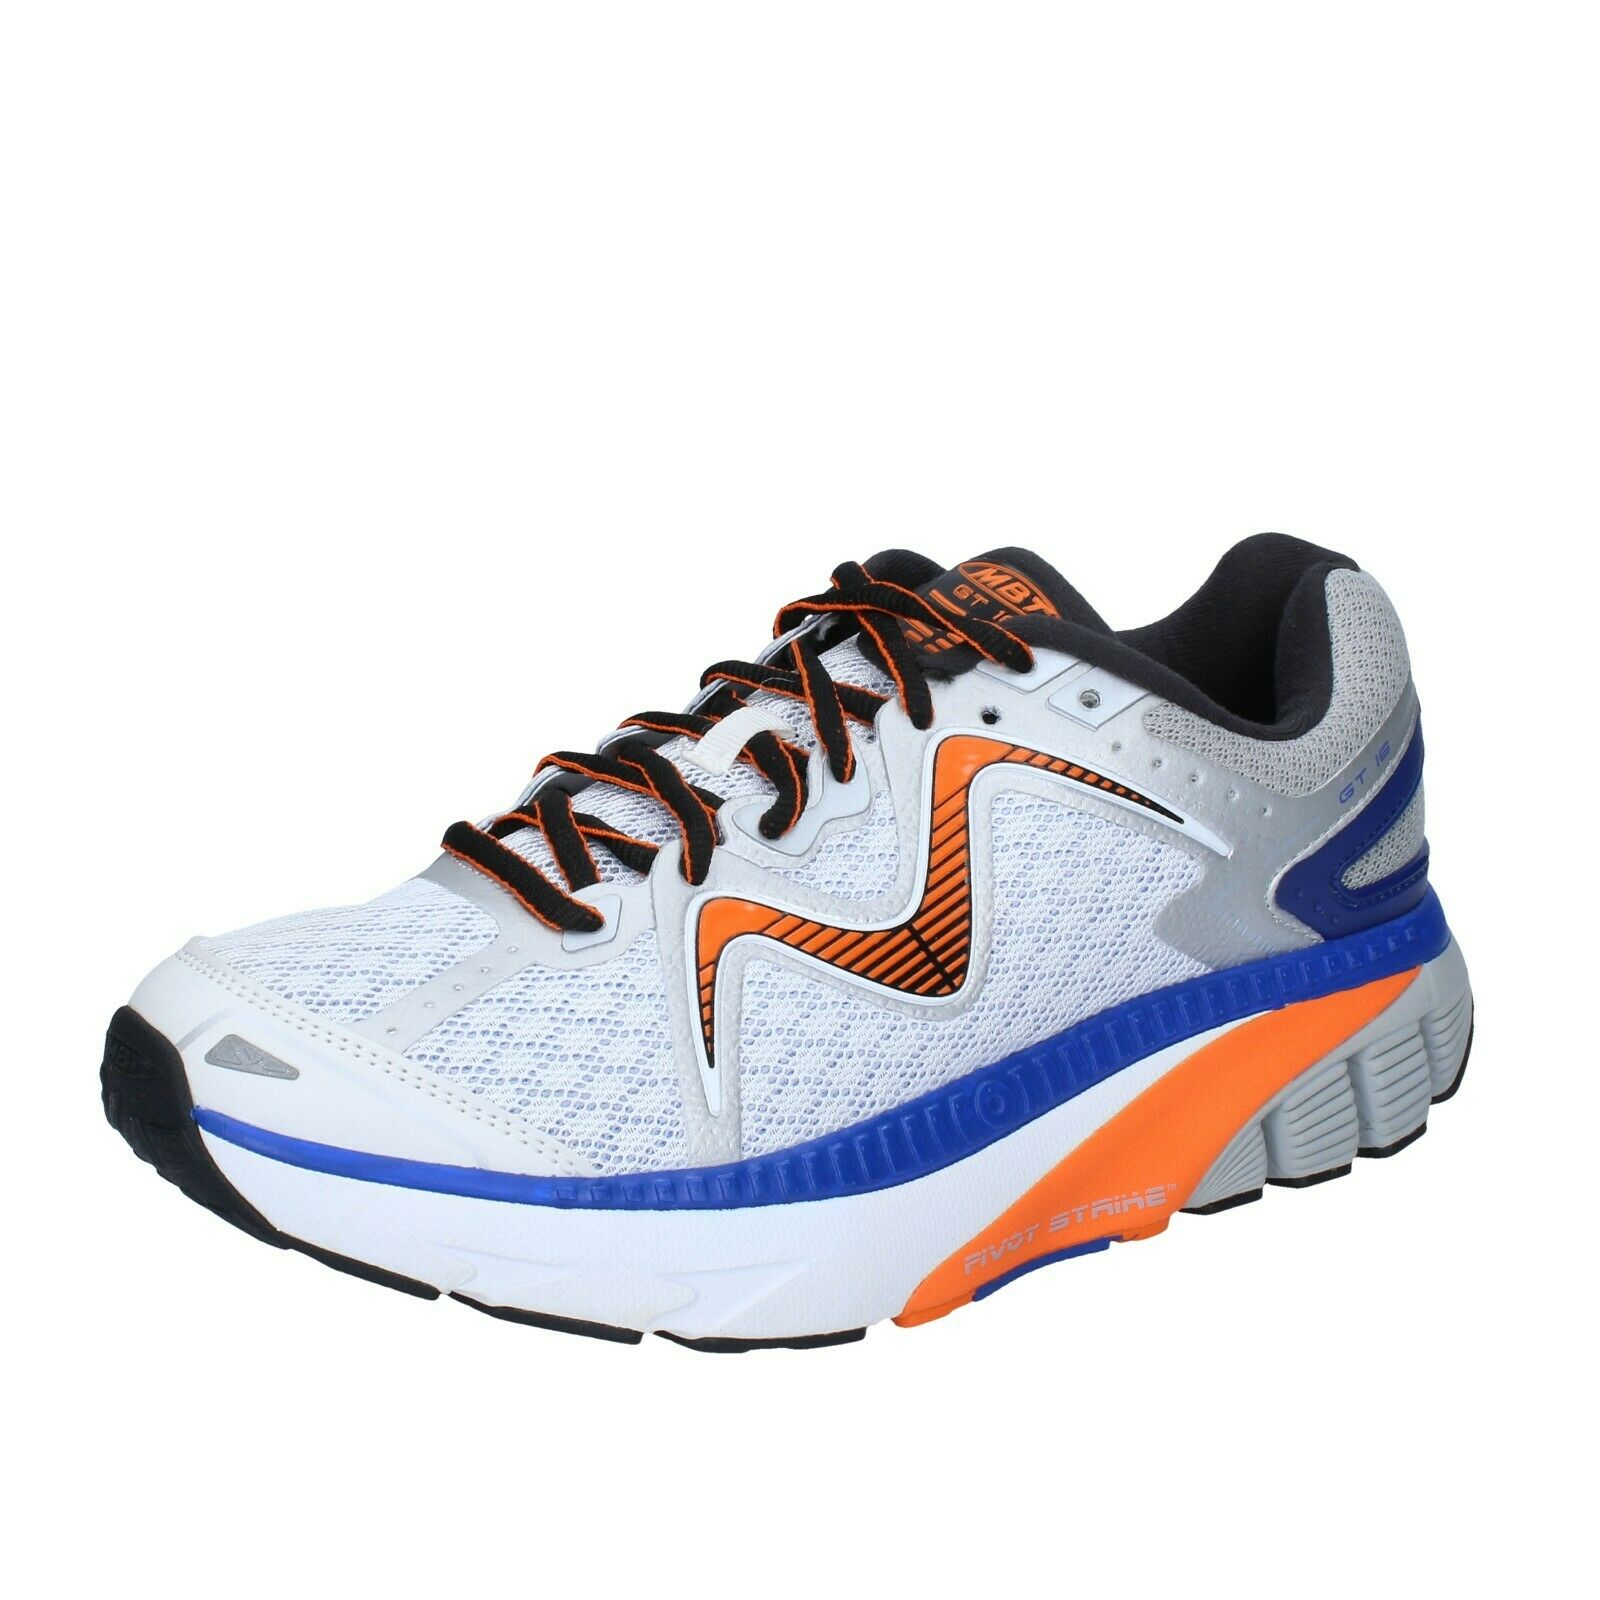 online store 61a93 015f1 Men s shoes MBT 8 () sneakers bluee white textile performance BS380-41,5